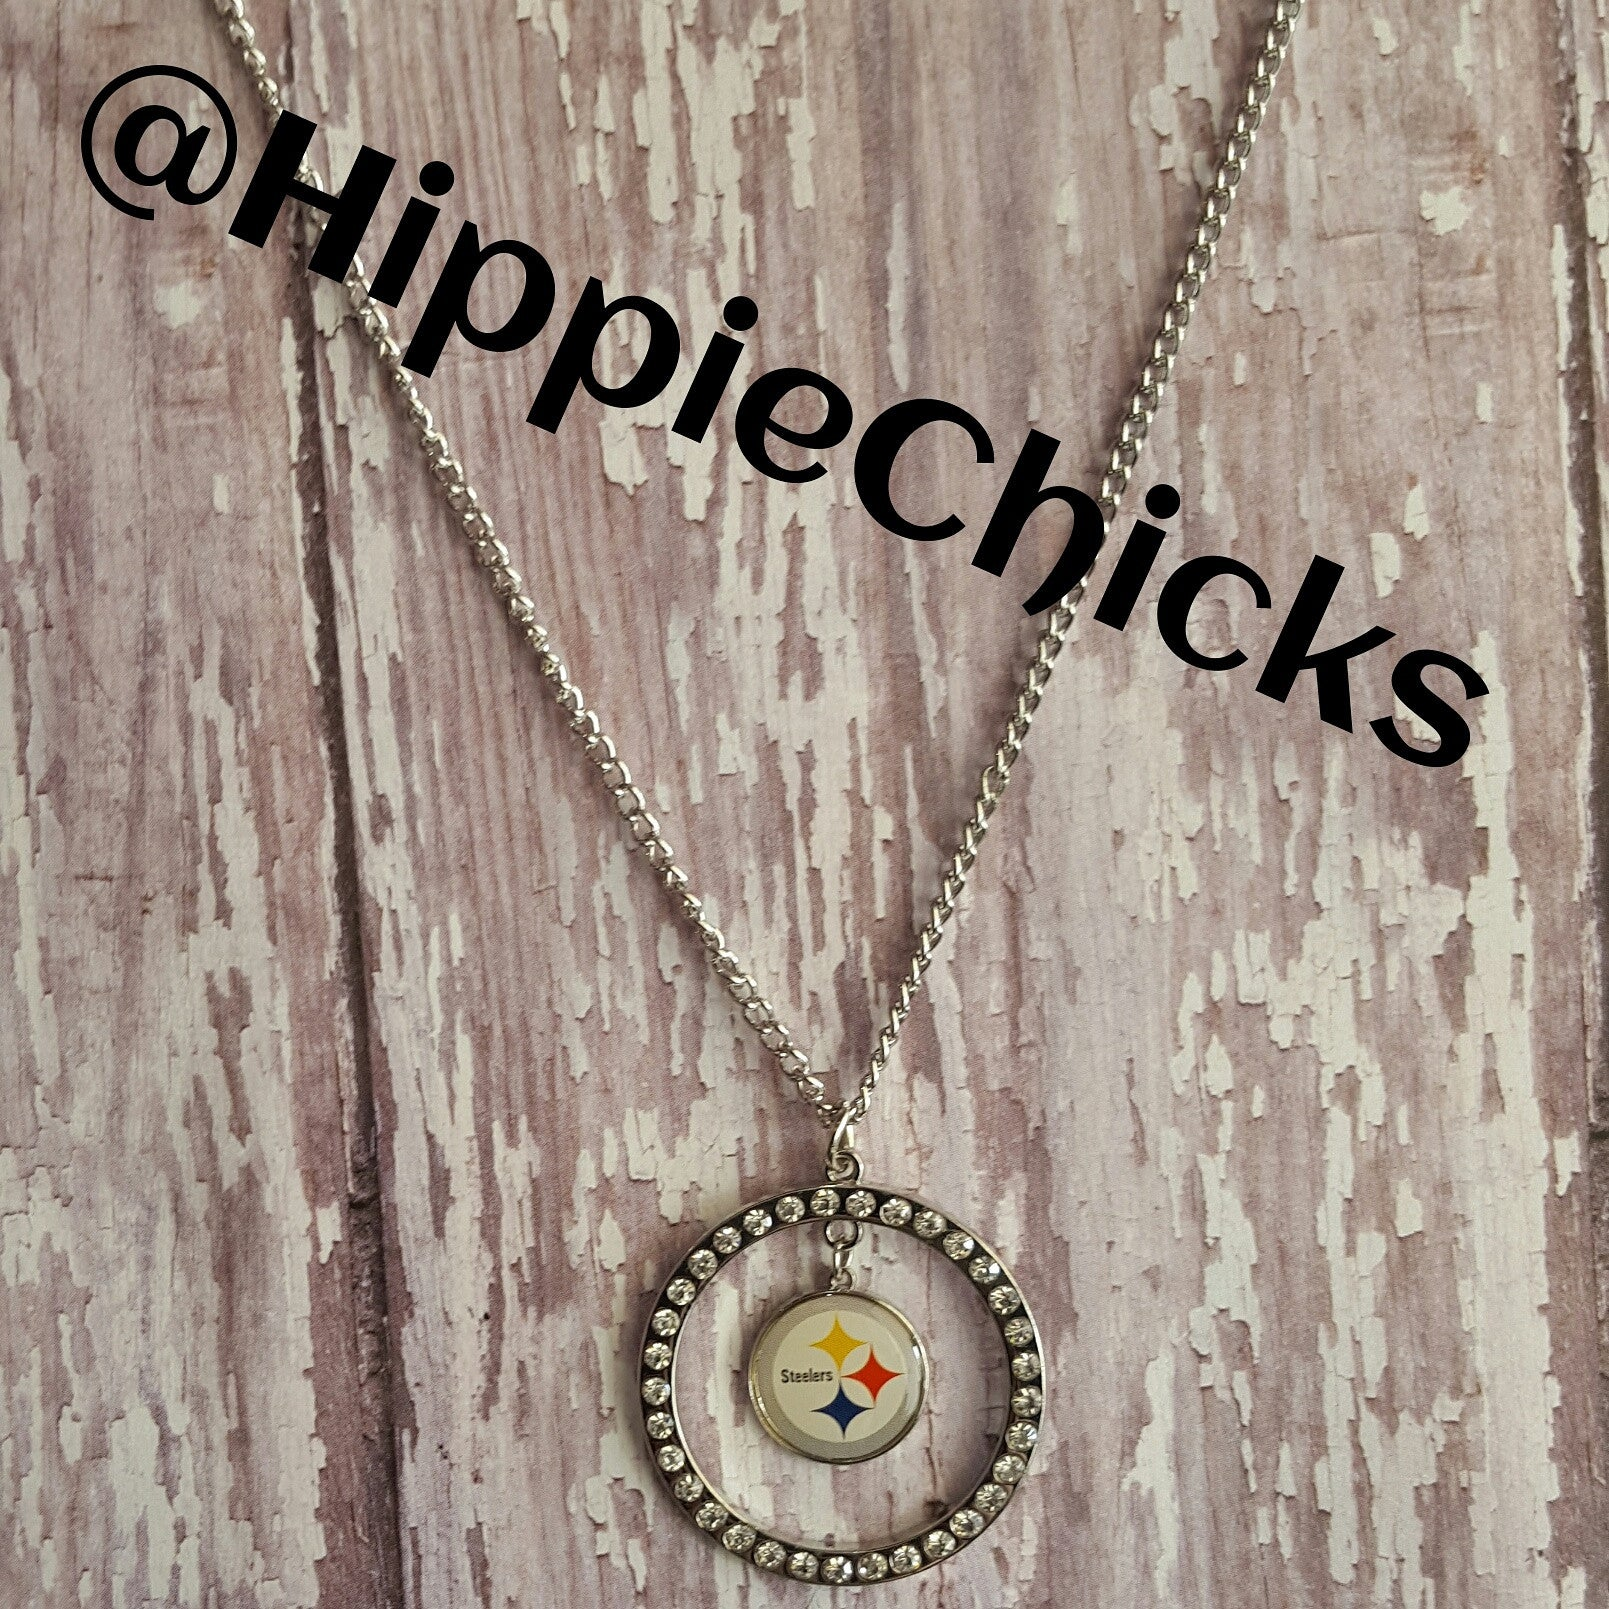 NFL Steelers Necklace